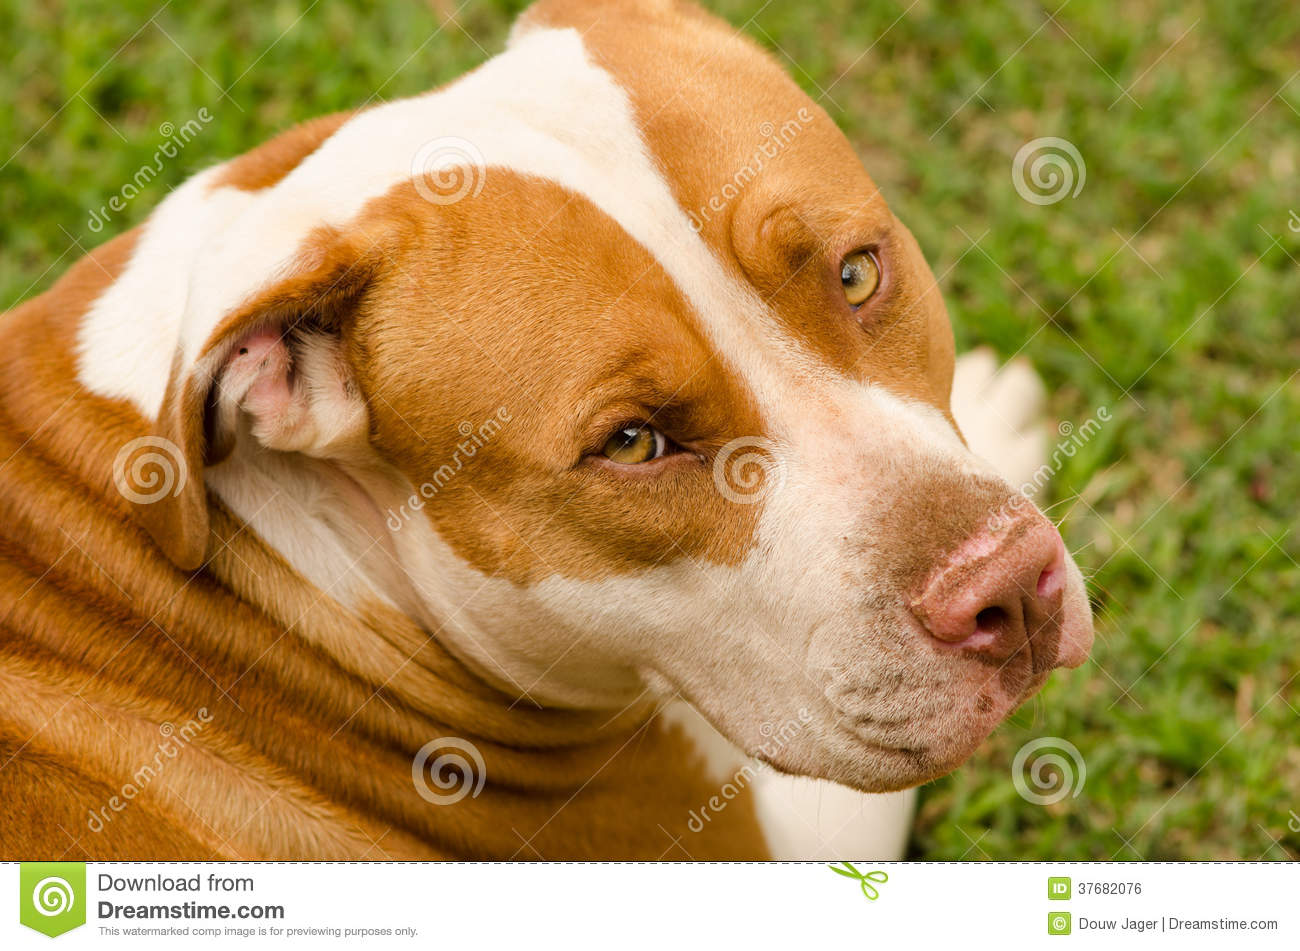 Pitbull dog look with shiny gold eyes with white and brown coat.